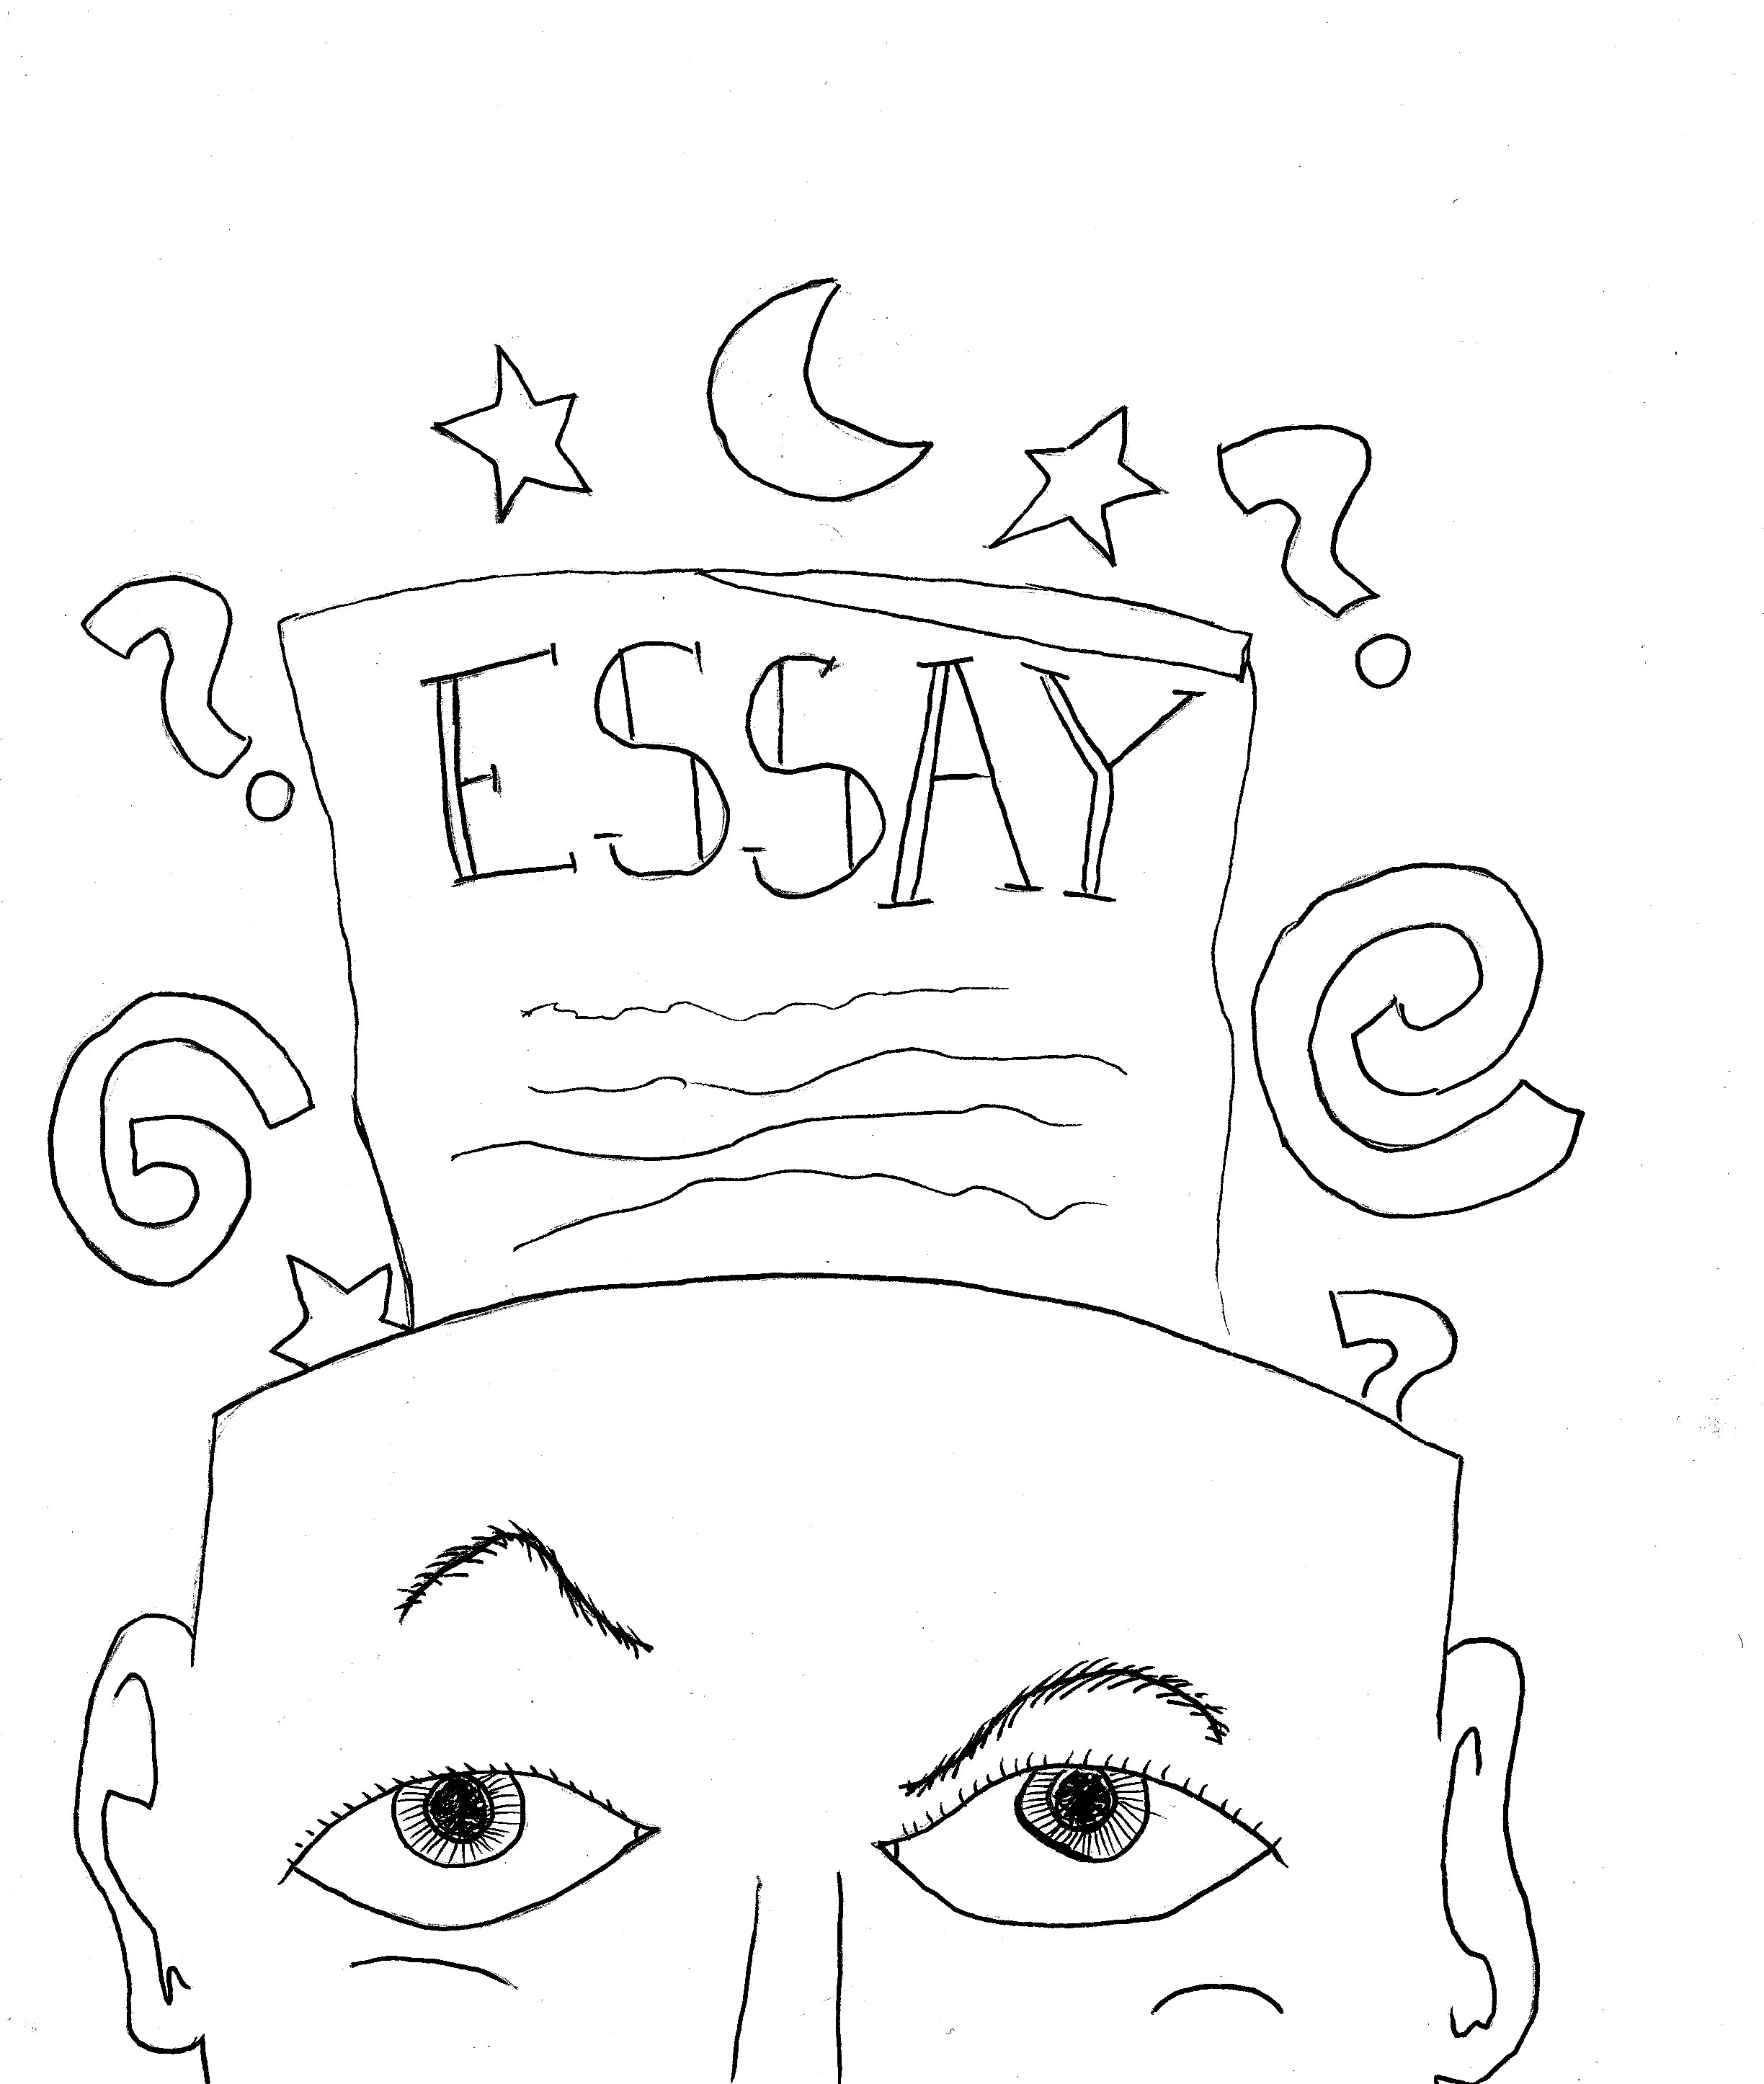 Creative college application essays - online paper writing